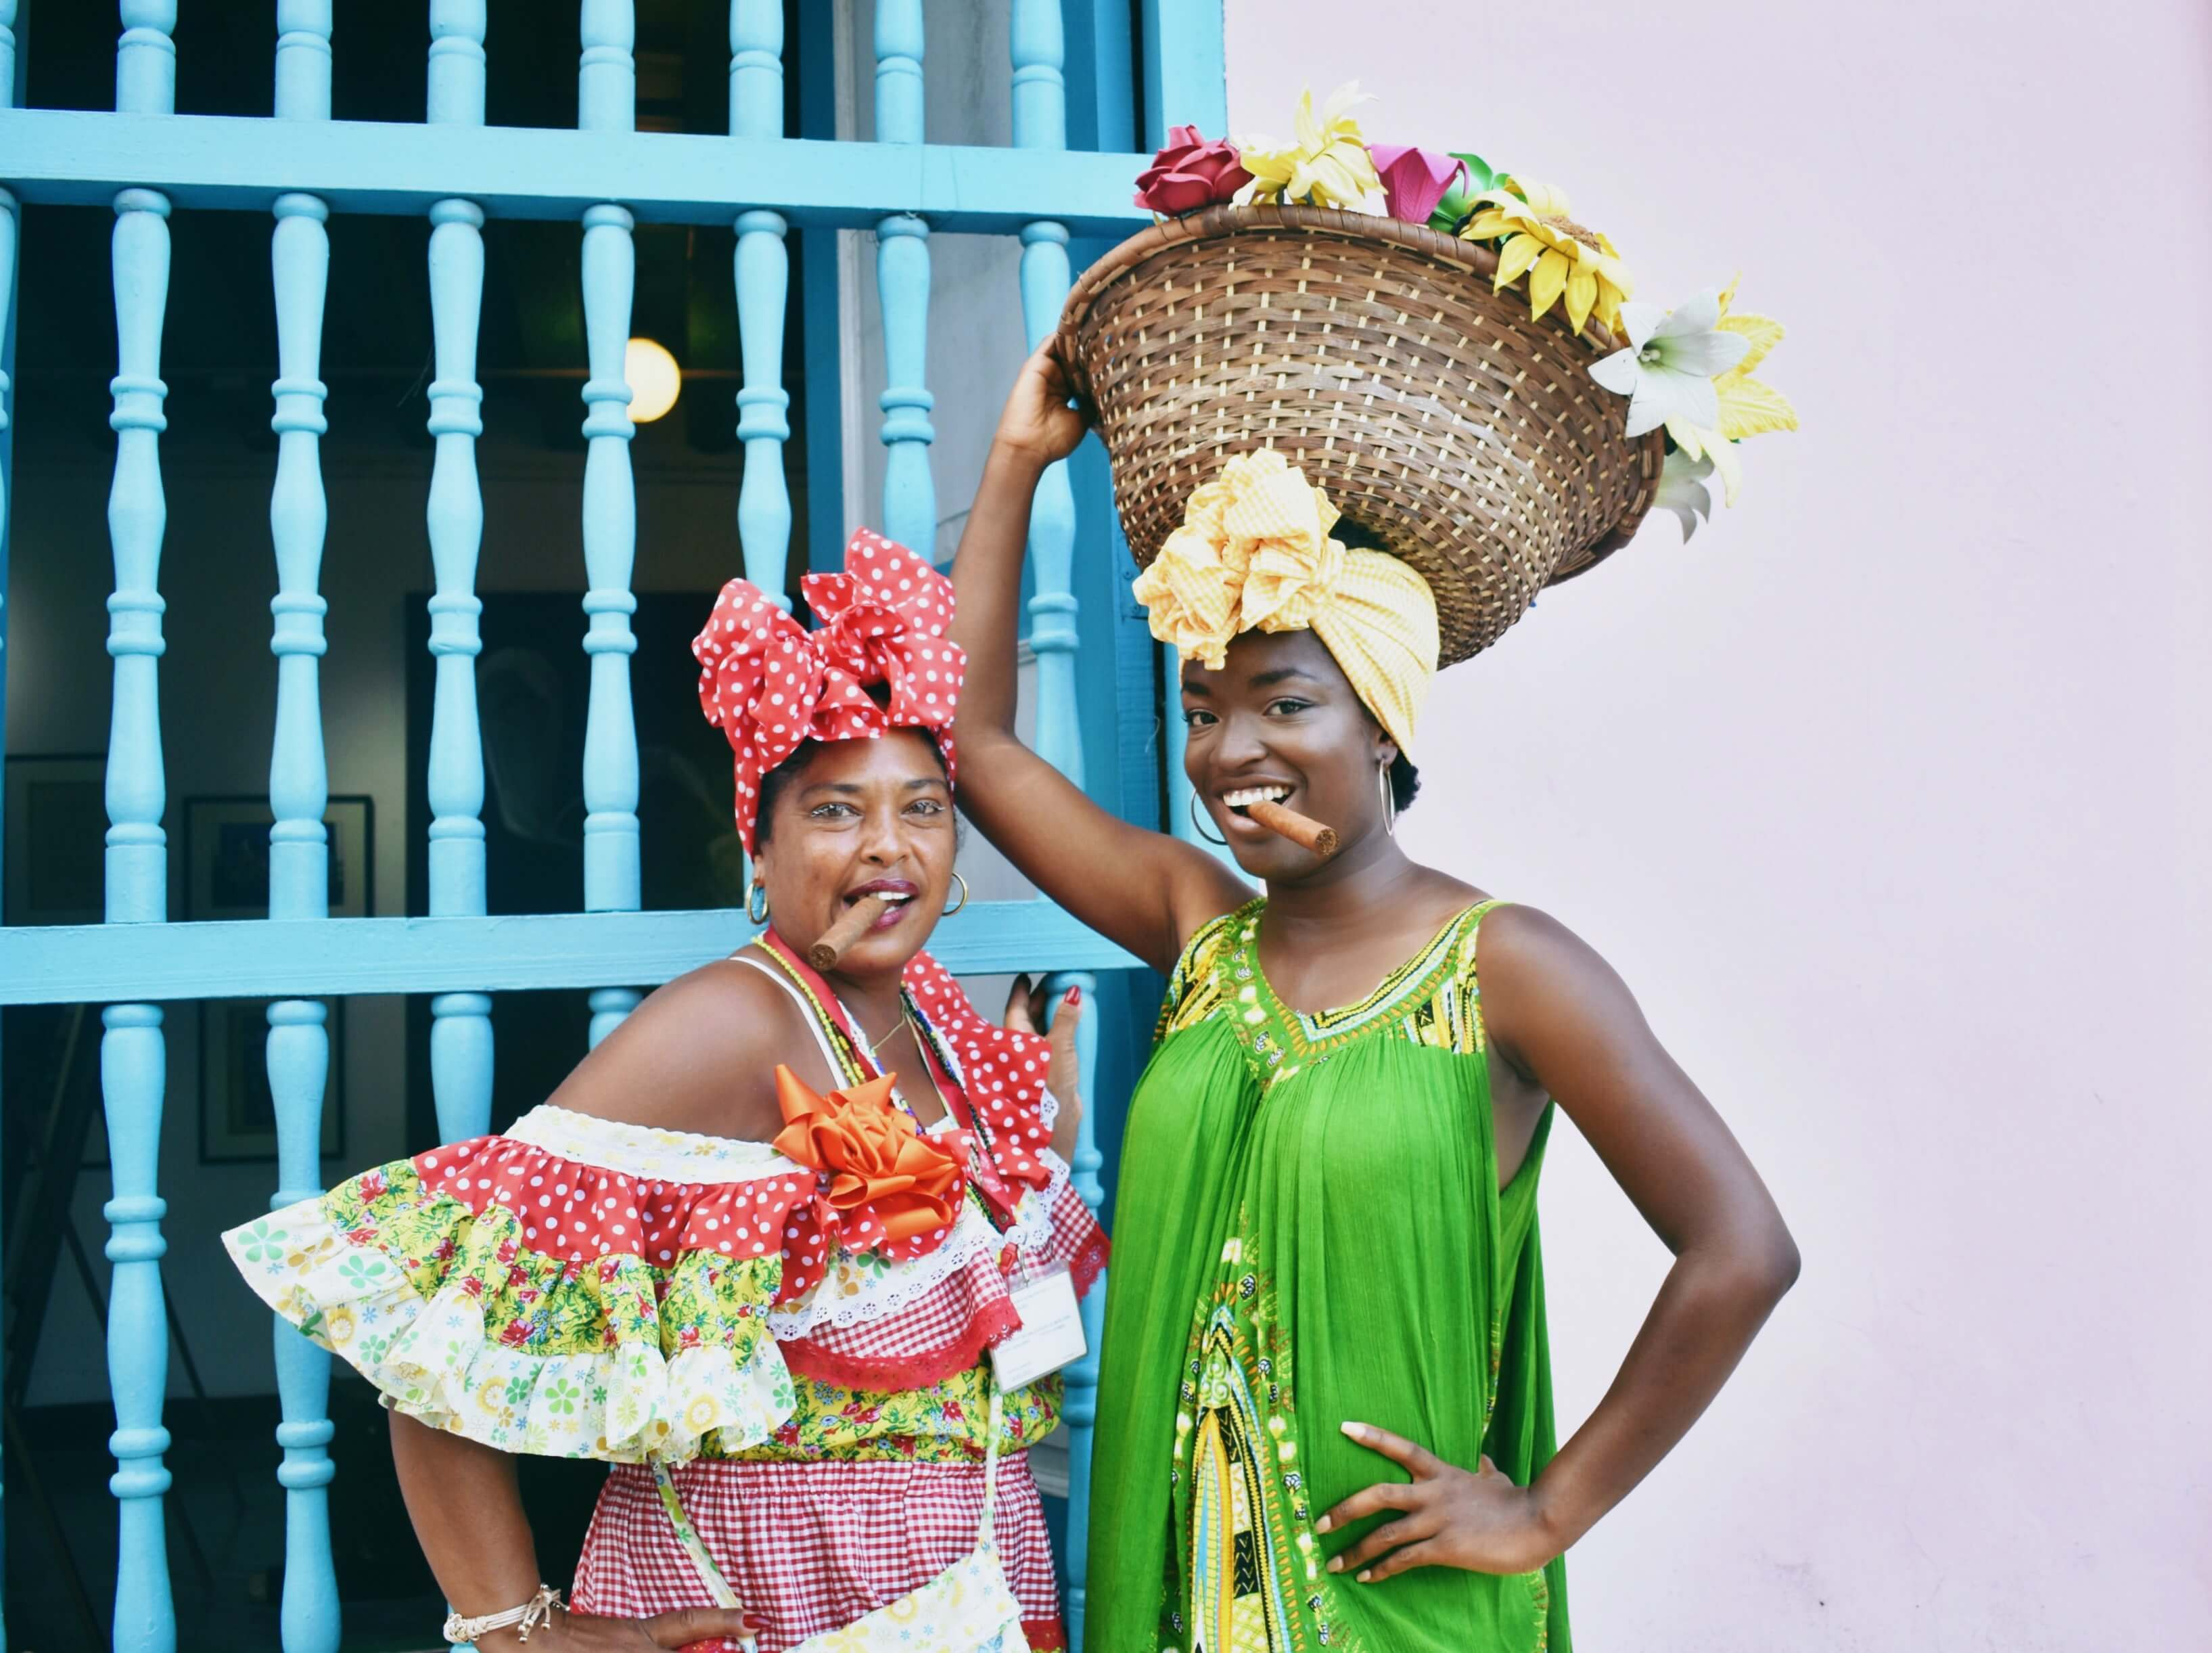 Somto posing with Laza, an Afro-Cubana in colorful clothes, on the streets of Havana Vieja